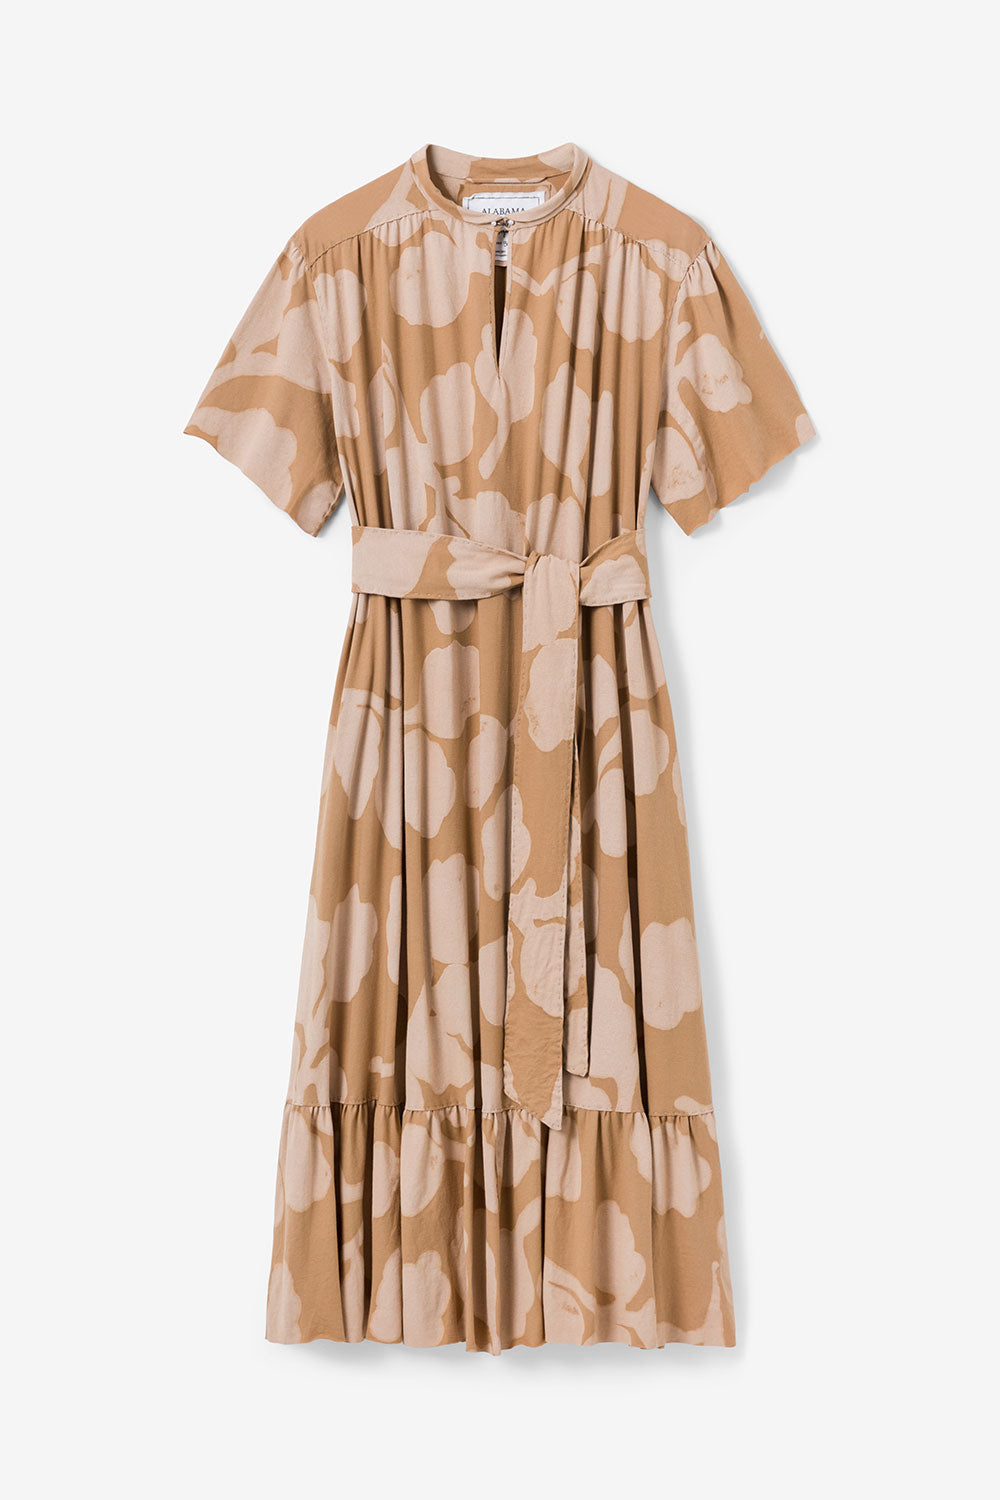 Alabama Chanin Organic Cotton Ines Dress with Keyhole Neckline in Hand-Painted Leaves Design